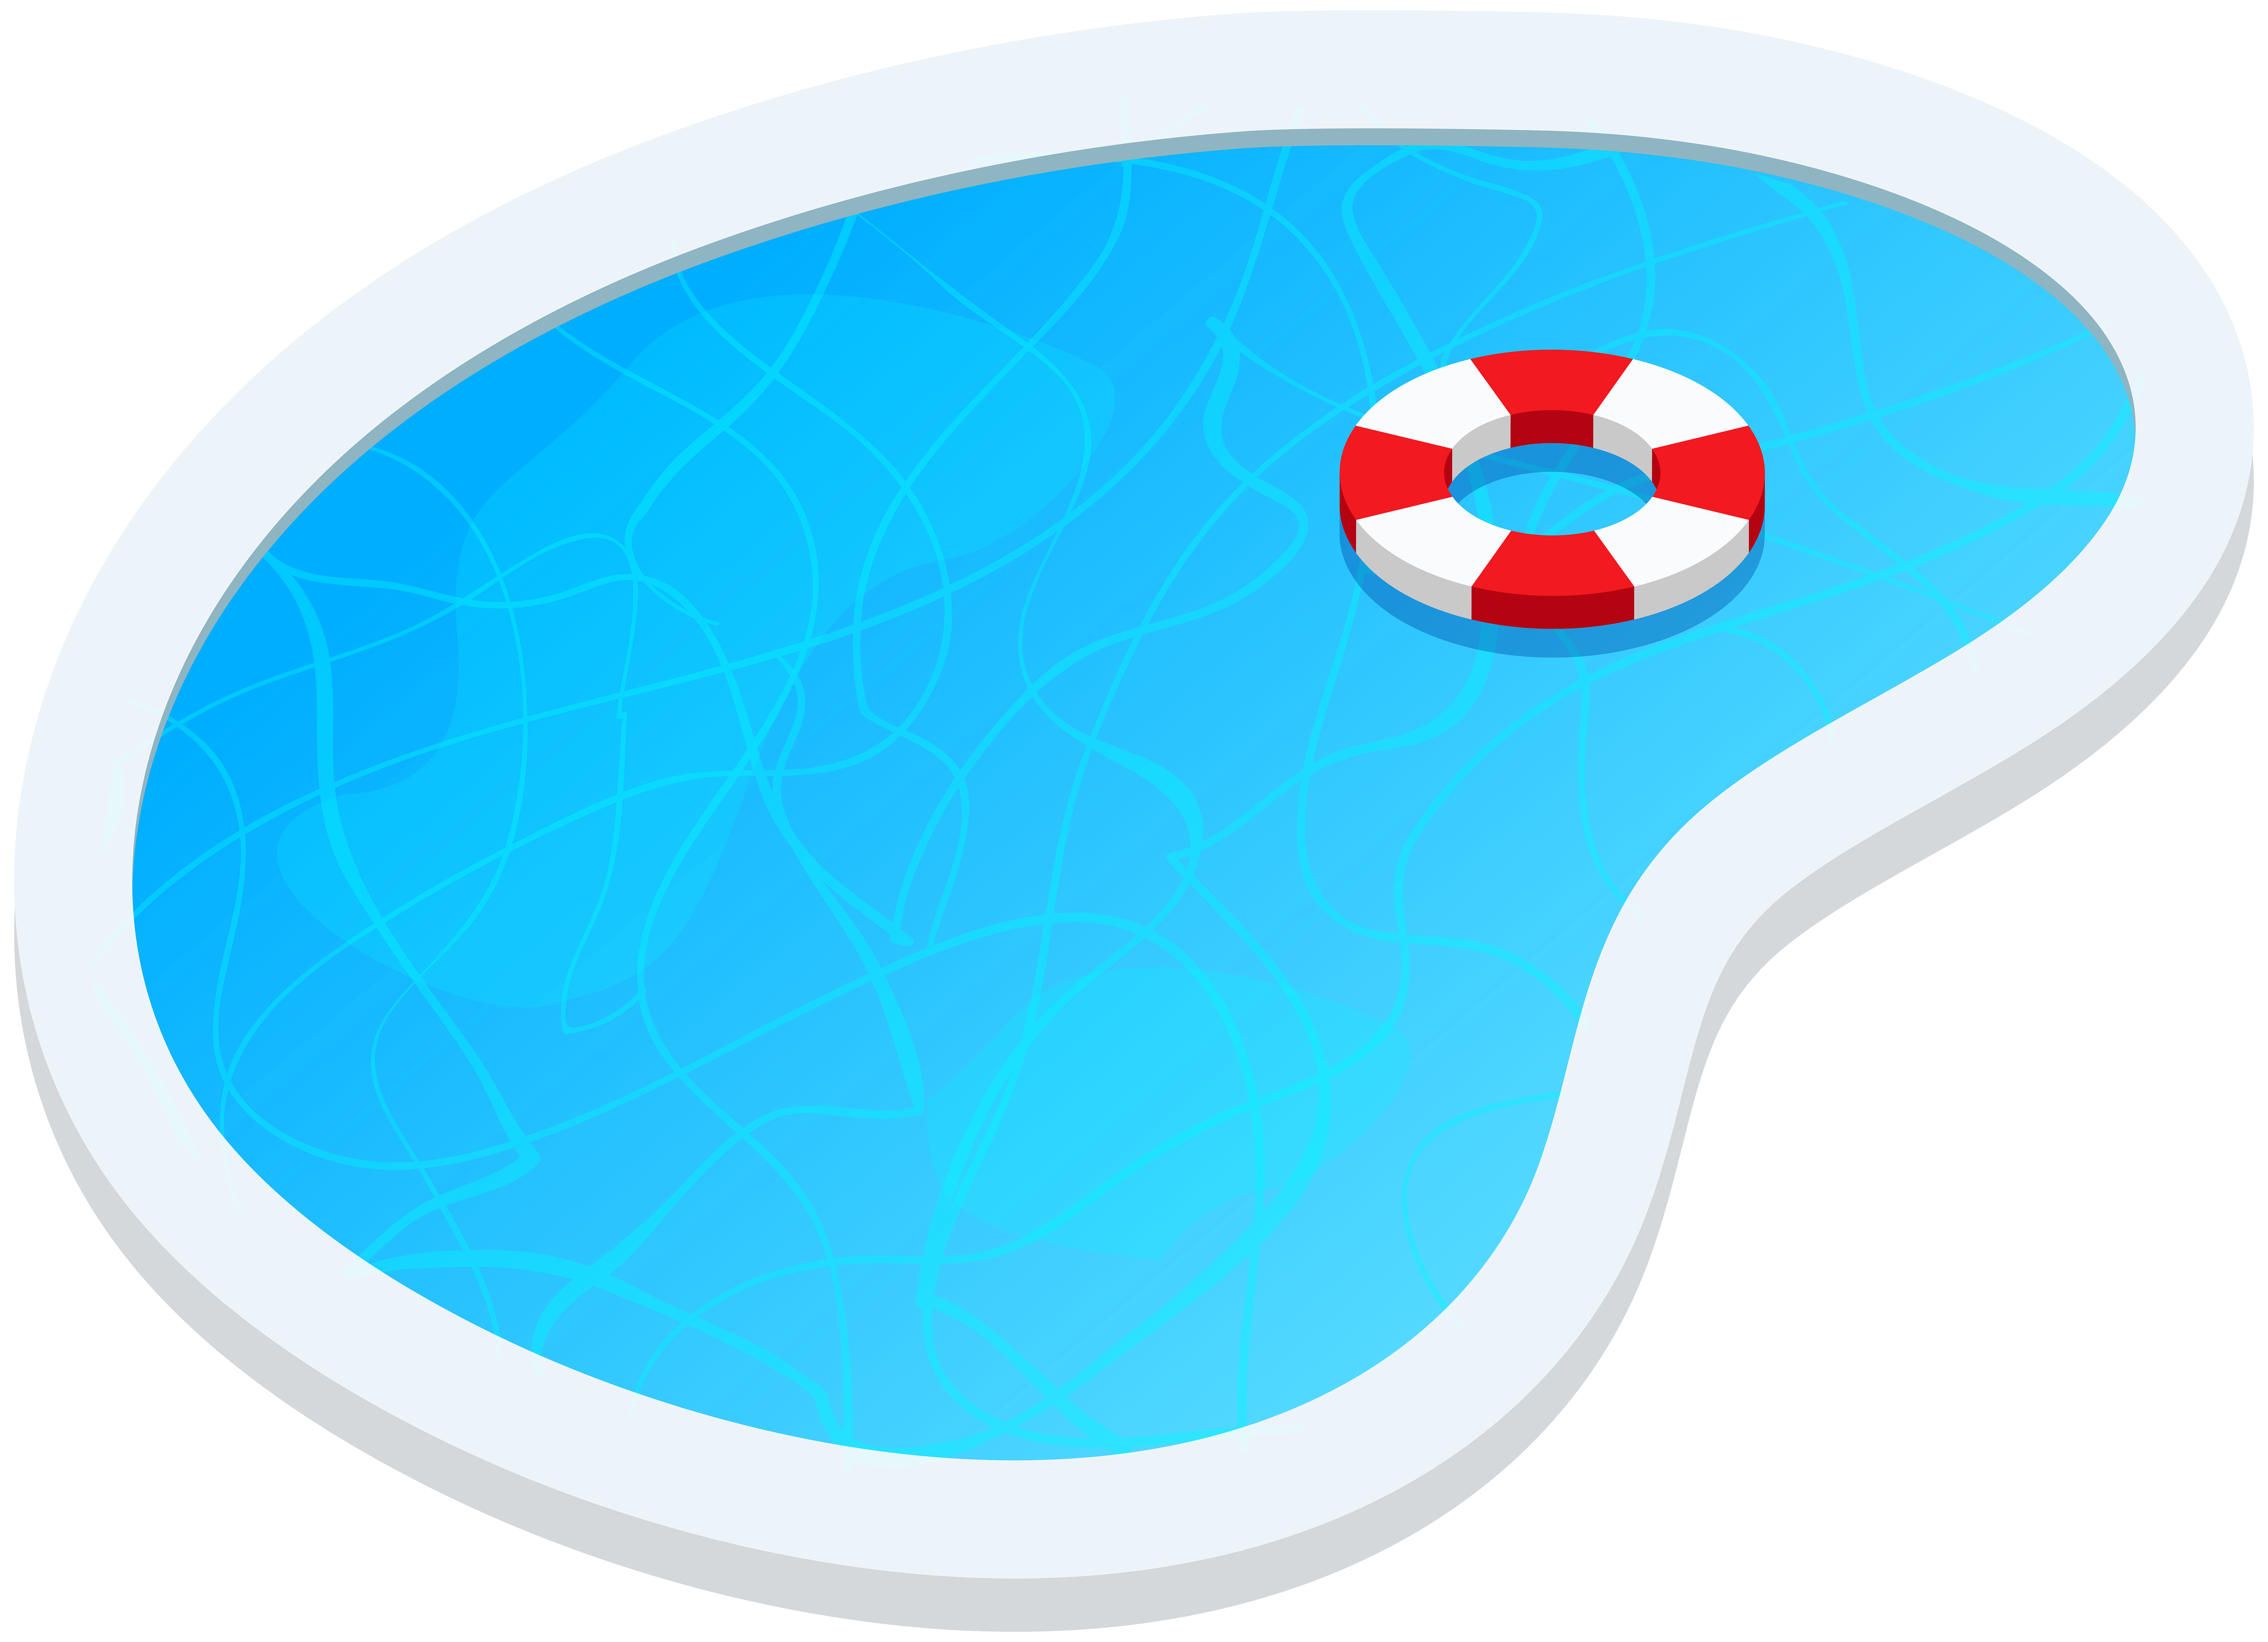 Pool pictures clipart freeuse Swimming Pool Oval PNG Clip Art - Best WEB Clipart freeuse